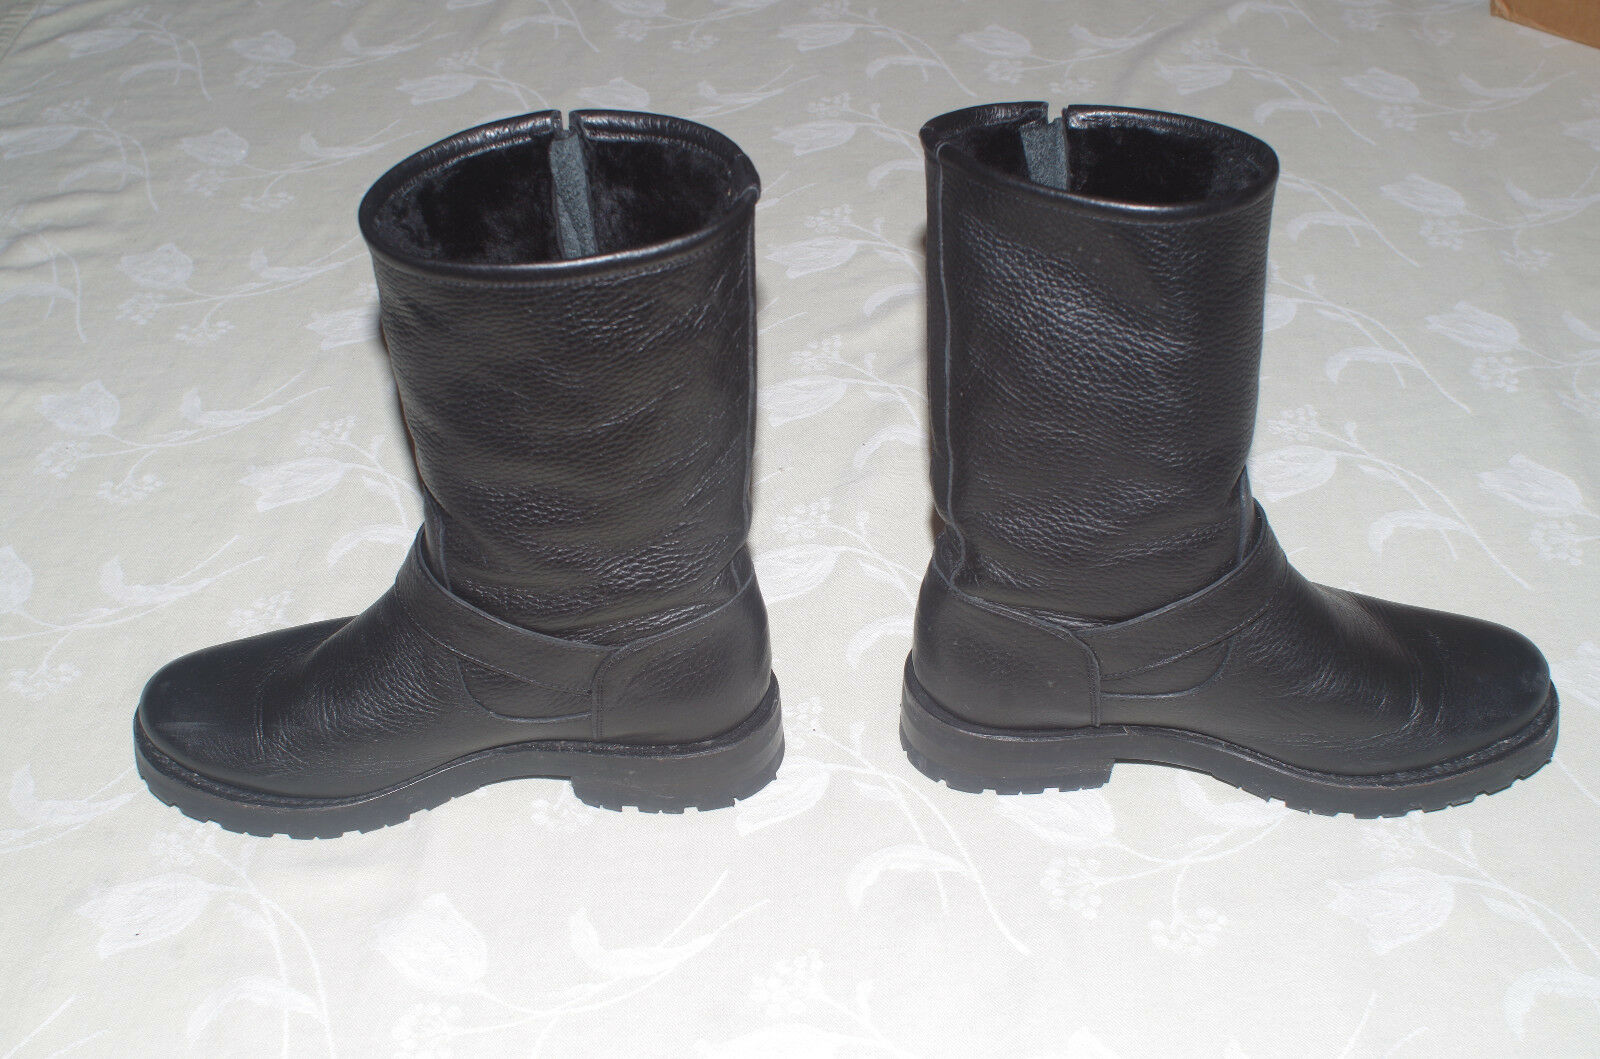 Frye Natalie Mid Engineer Lug Boots Boots Boots Black Leather and Shearling 7 Lightly Used 0da2d2